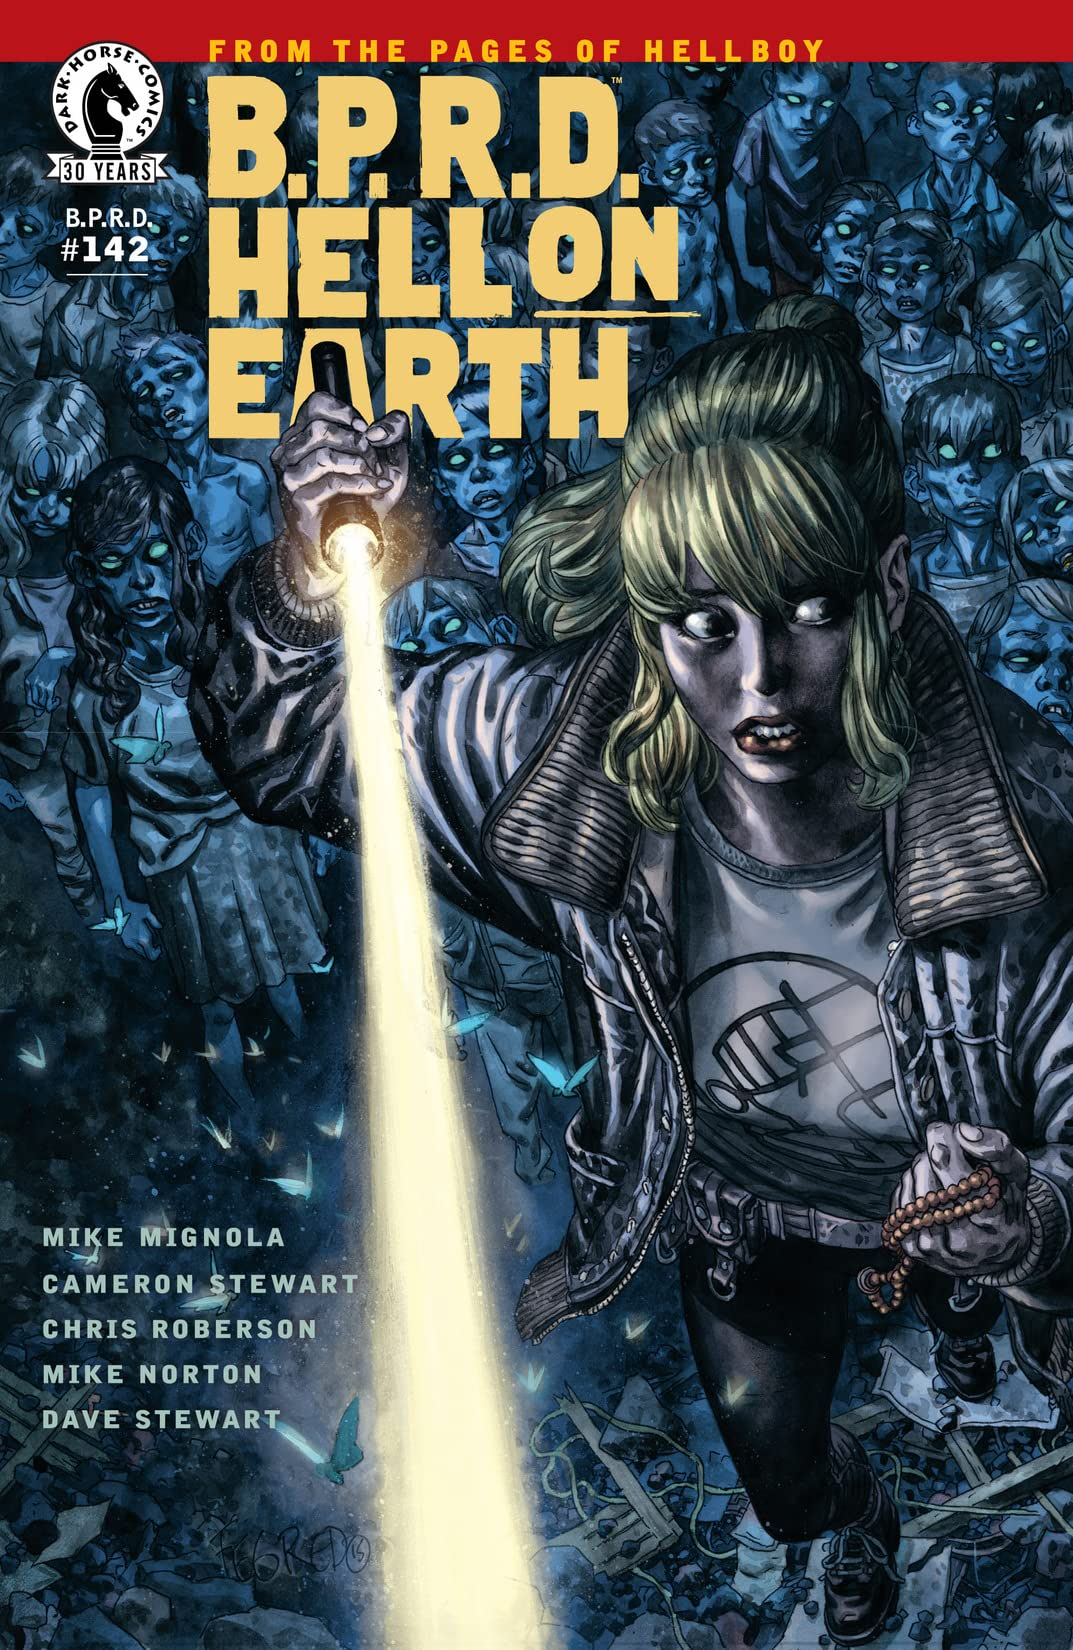 B.P.R.D. Hell on Earth #142